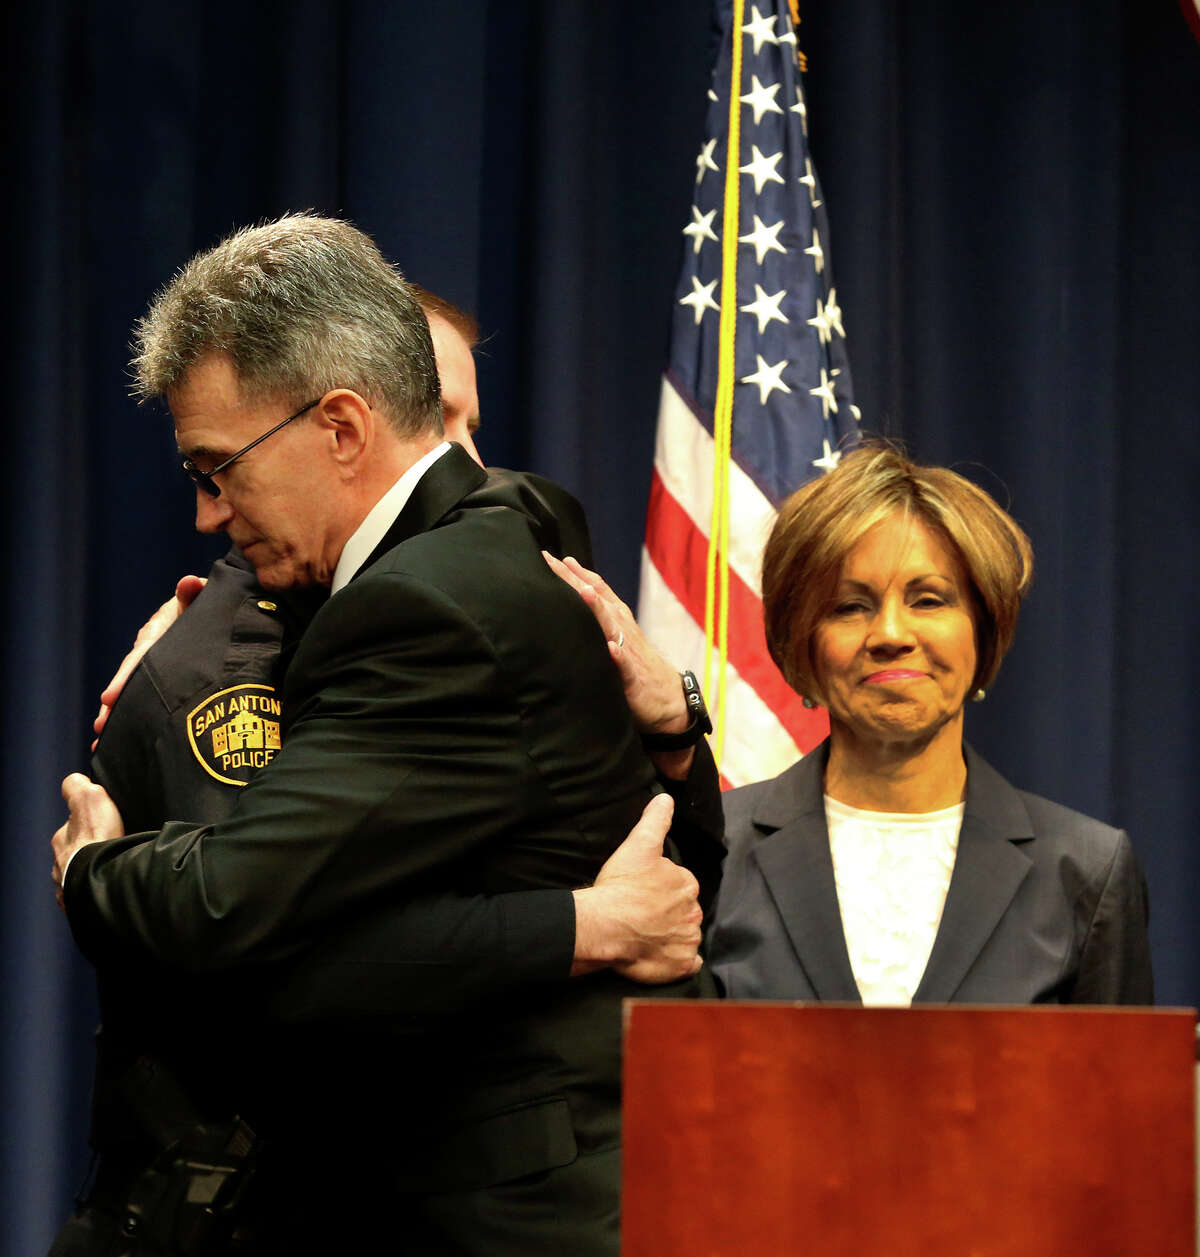 Former Police Chief Wiliam McManus (center) embraces interim Police Chief Anthony Trevino at City Hall after City Manager Sheryl Sculley announced her selection for the job.